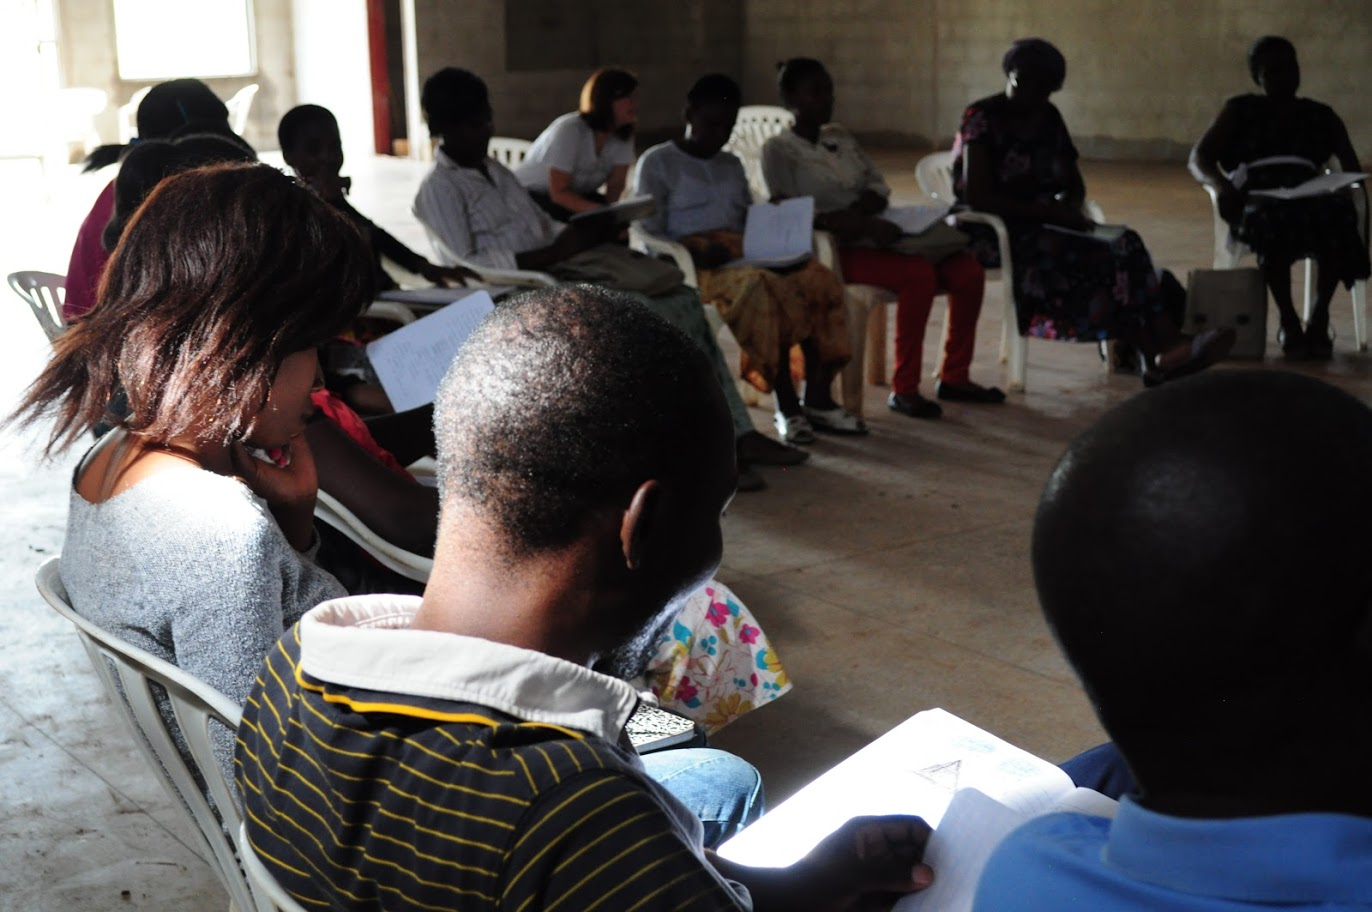 26 teacher, professors, pastors, and other helping professionals from around the region of Lusaka, Zambia attended 5 days of intensive onsite training to become educational coaches through our Academy program.